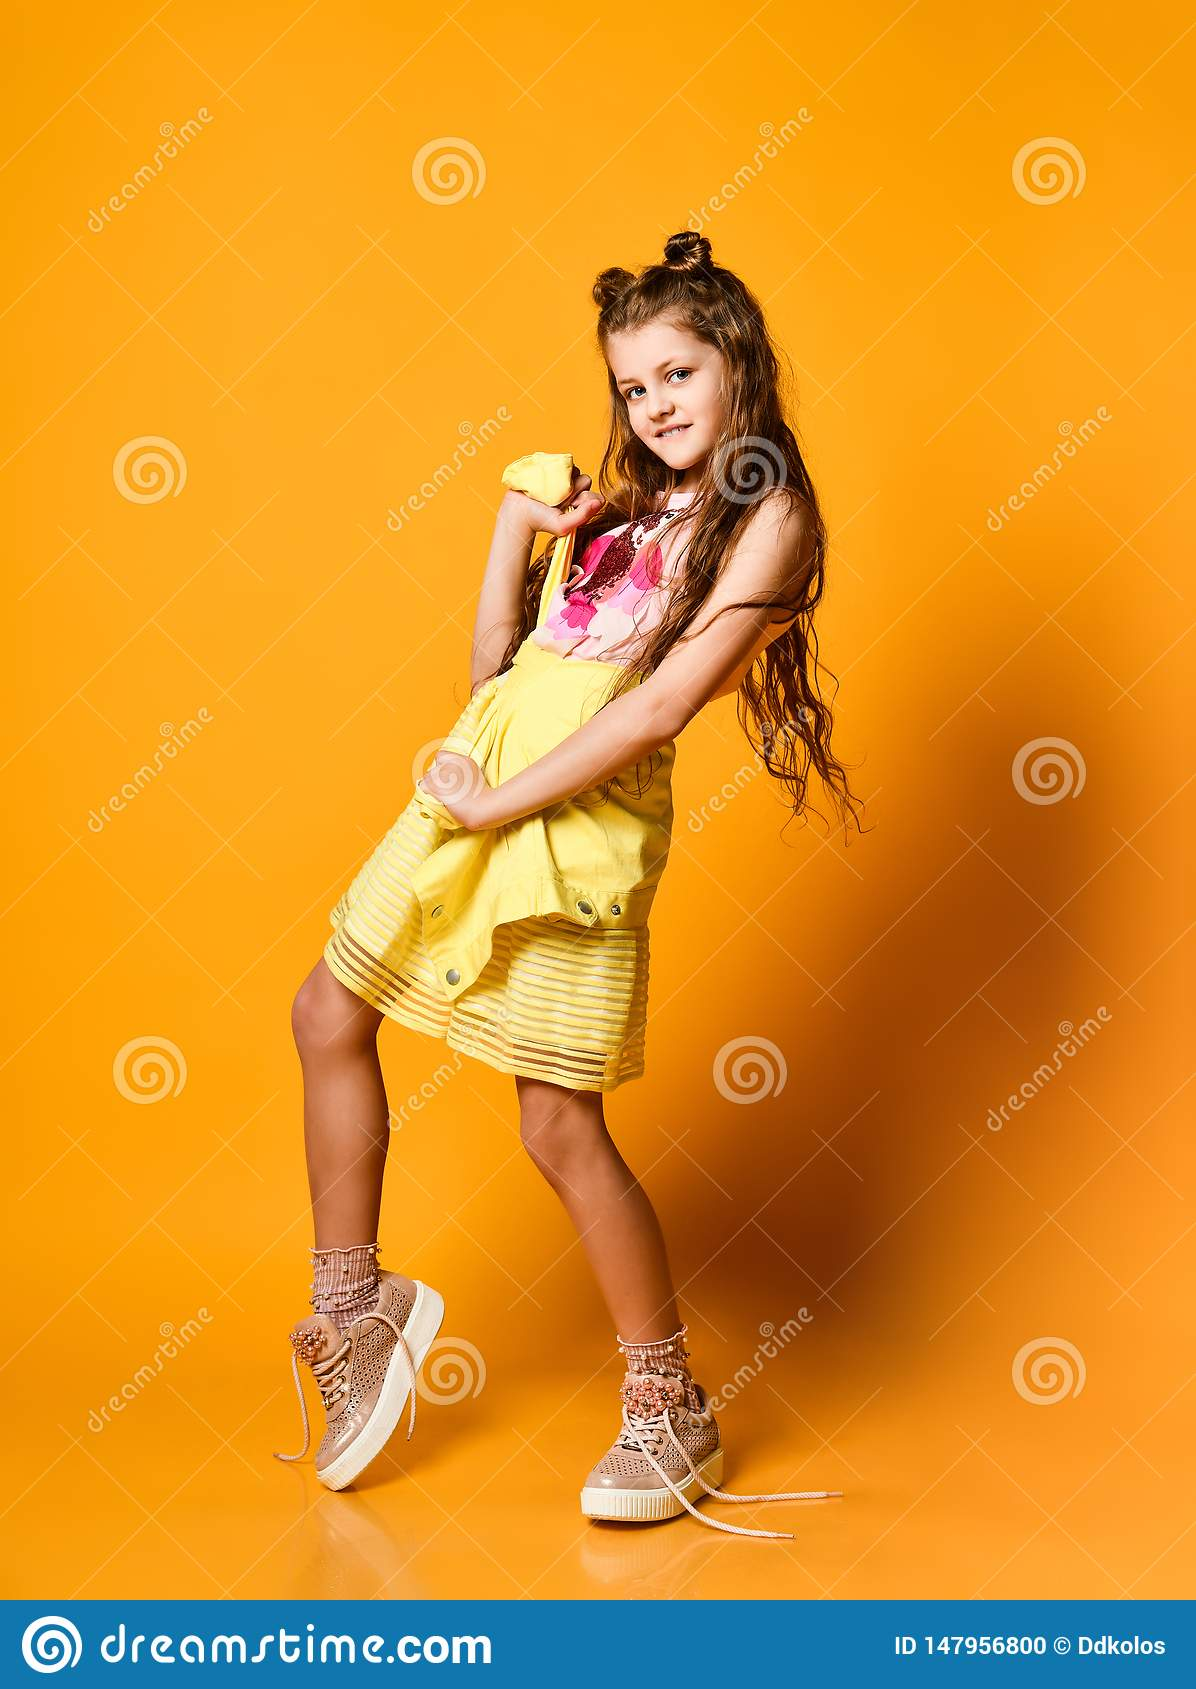 35 135 Cute Little Teen Girl Photos Free Royalty Stock From Dreamstime